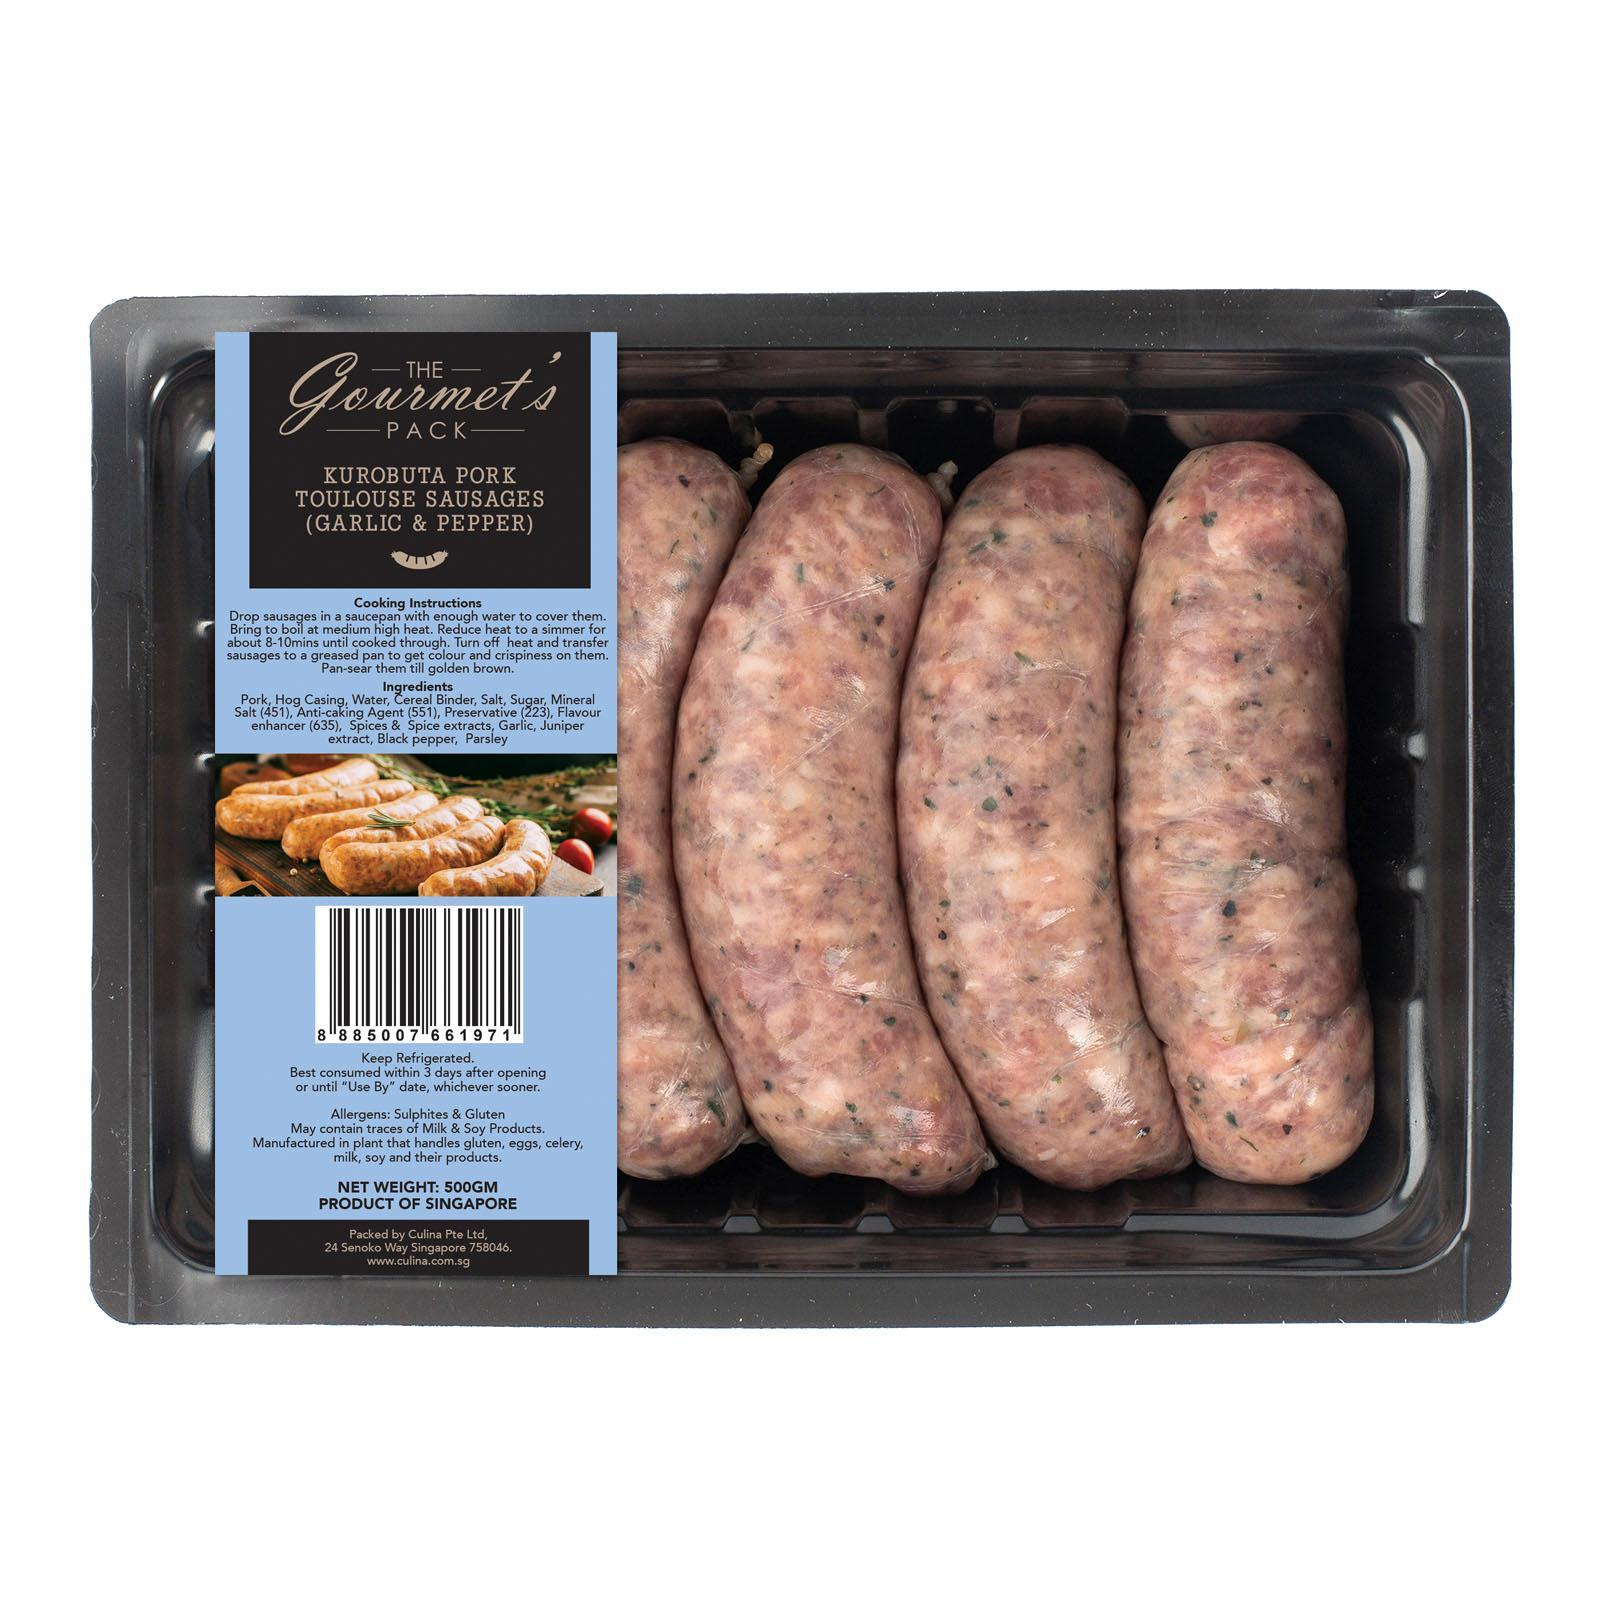 The Gourmet's Pack Kurobuta Pork Toulouse Sausages Thick 5s Per Pack